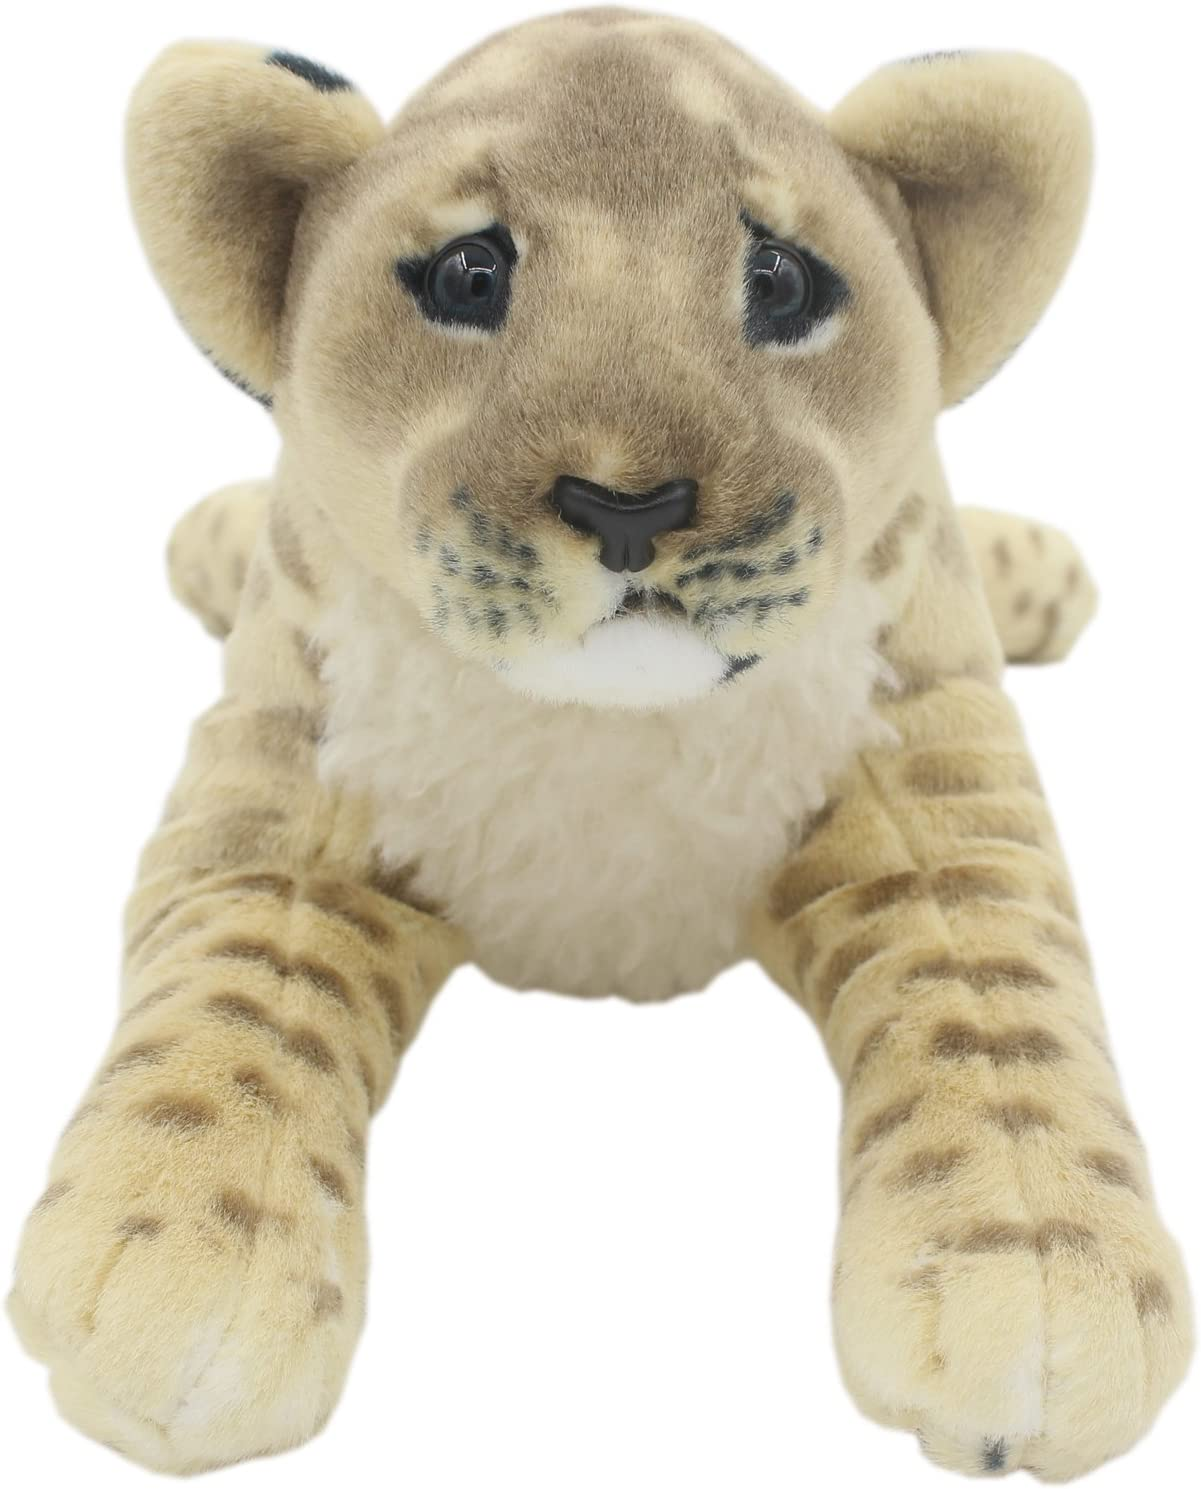 TAGLN The Jungle Animals Stuffed Plush Toys Lion Tiger Leopard Panther Pillows (Brown Lioness, 16 Inch)